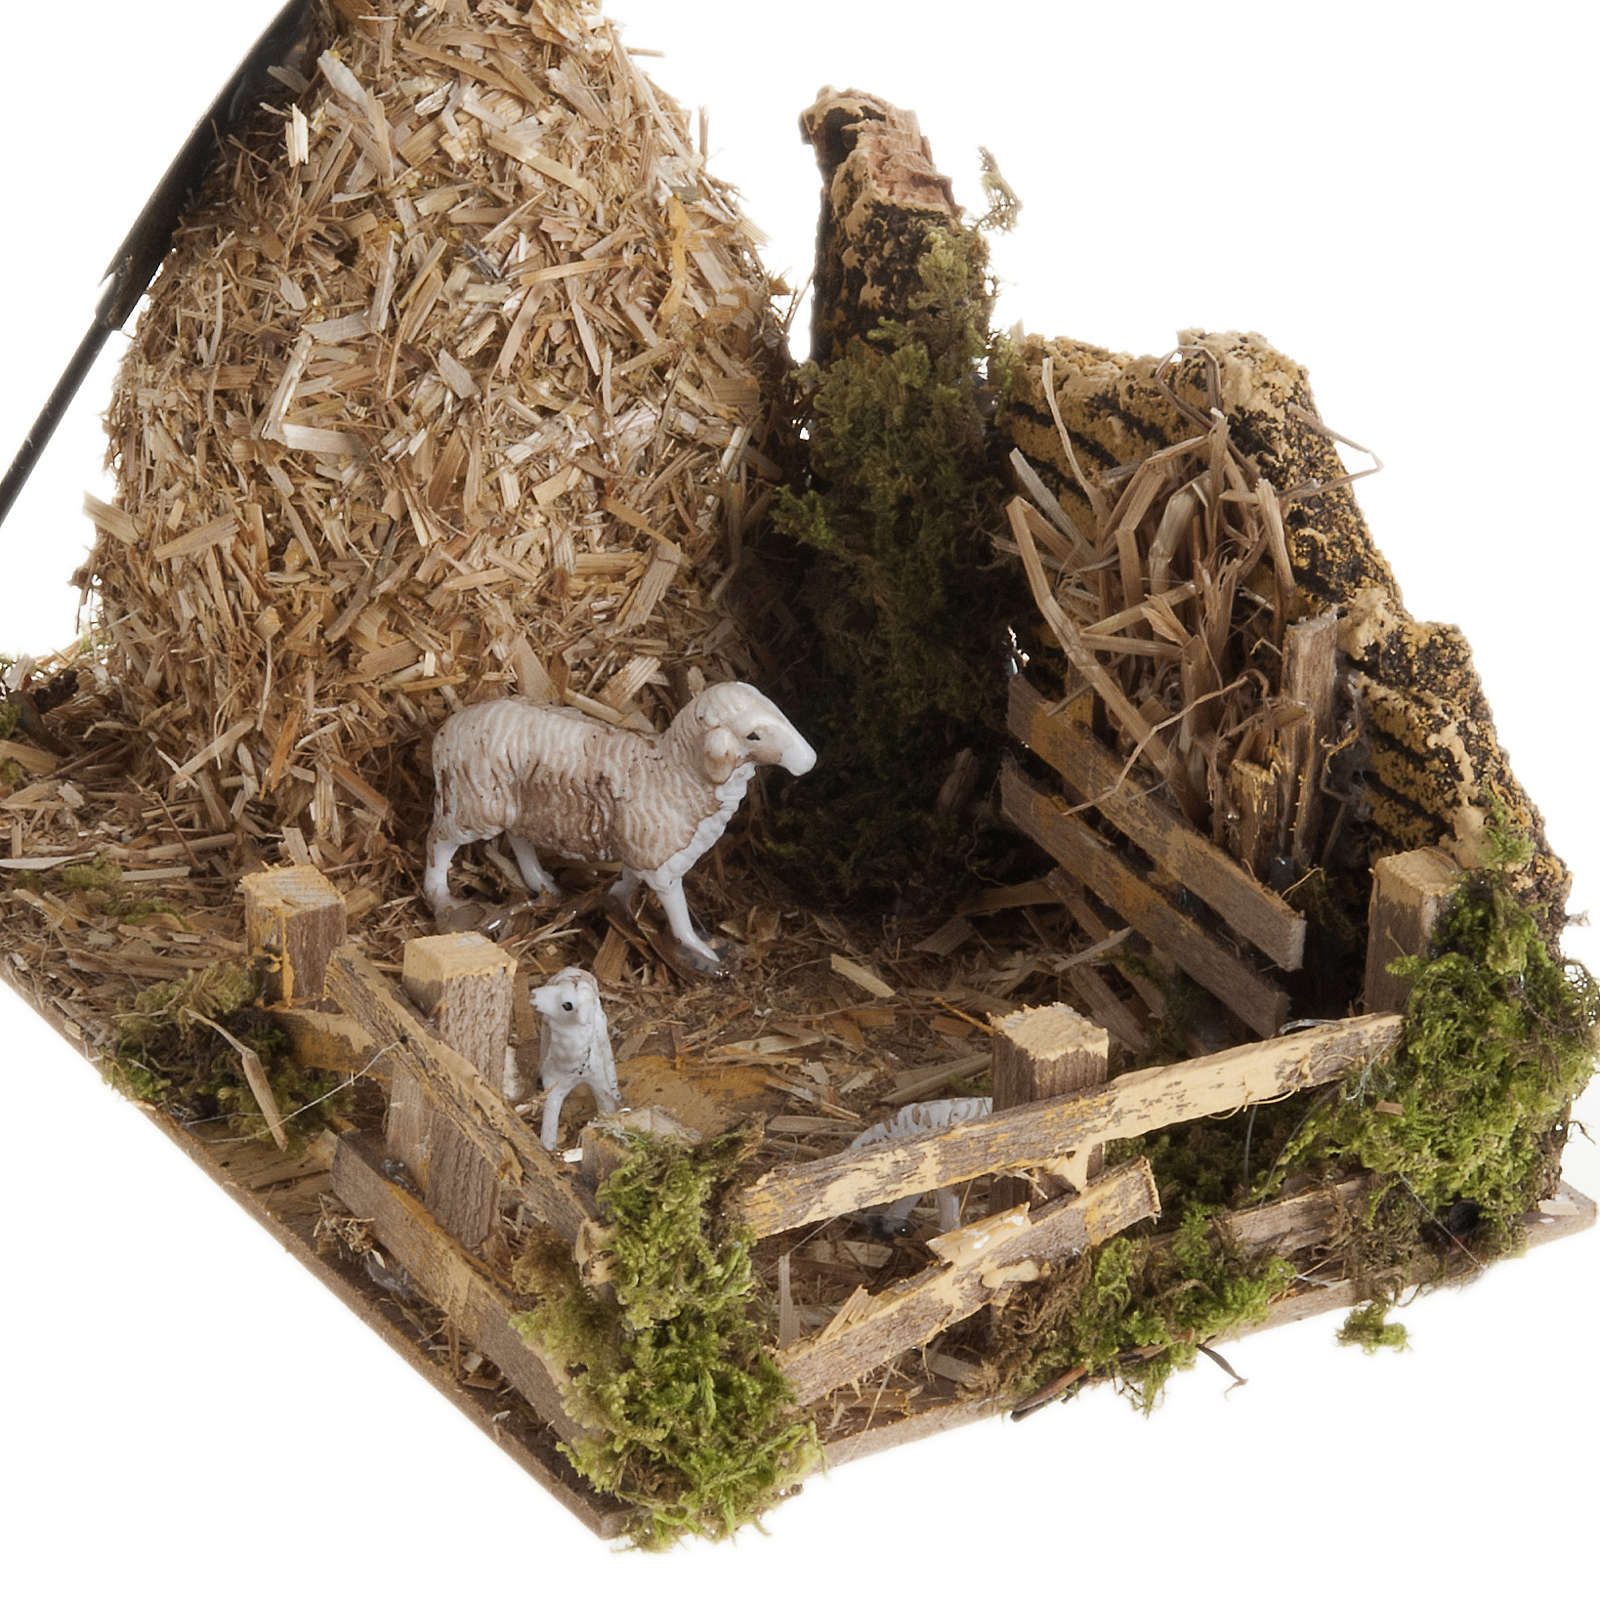 Nativity scene, sheepfold and sheaf of straw 3